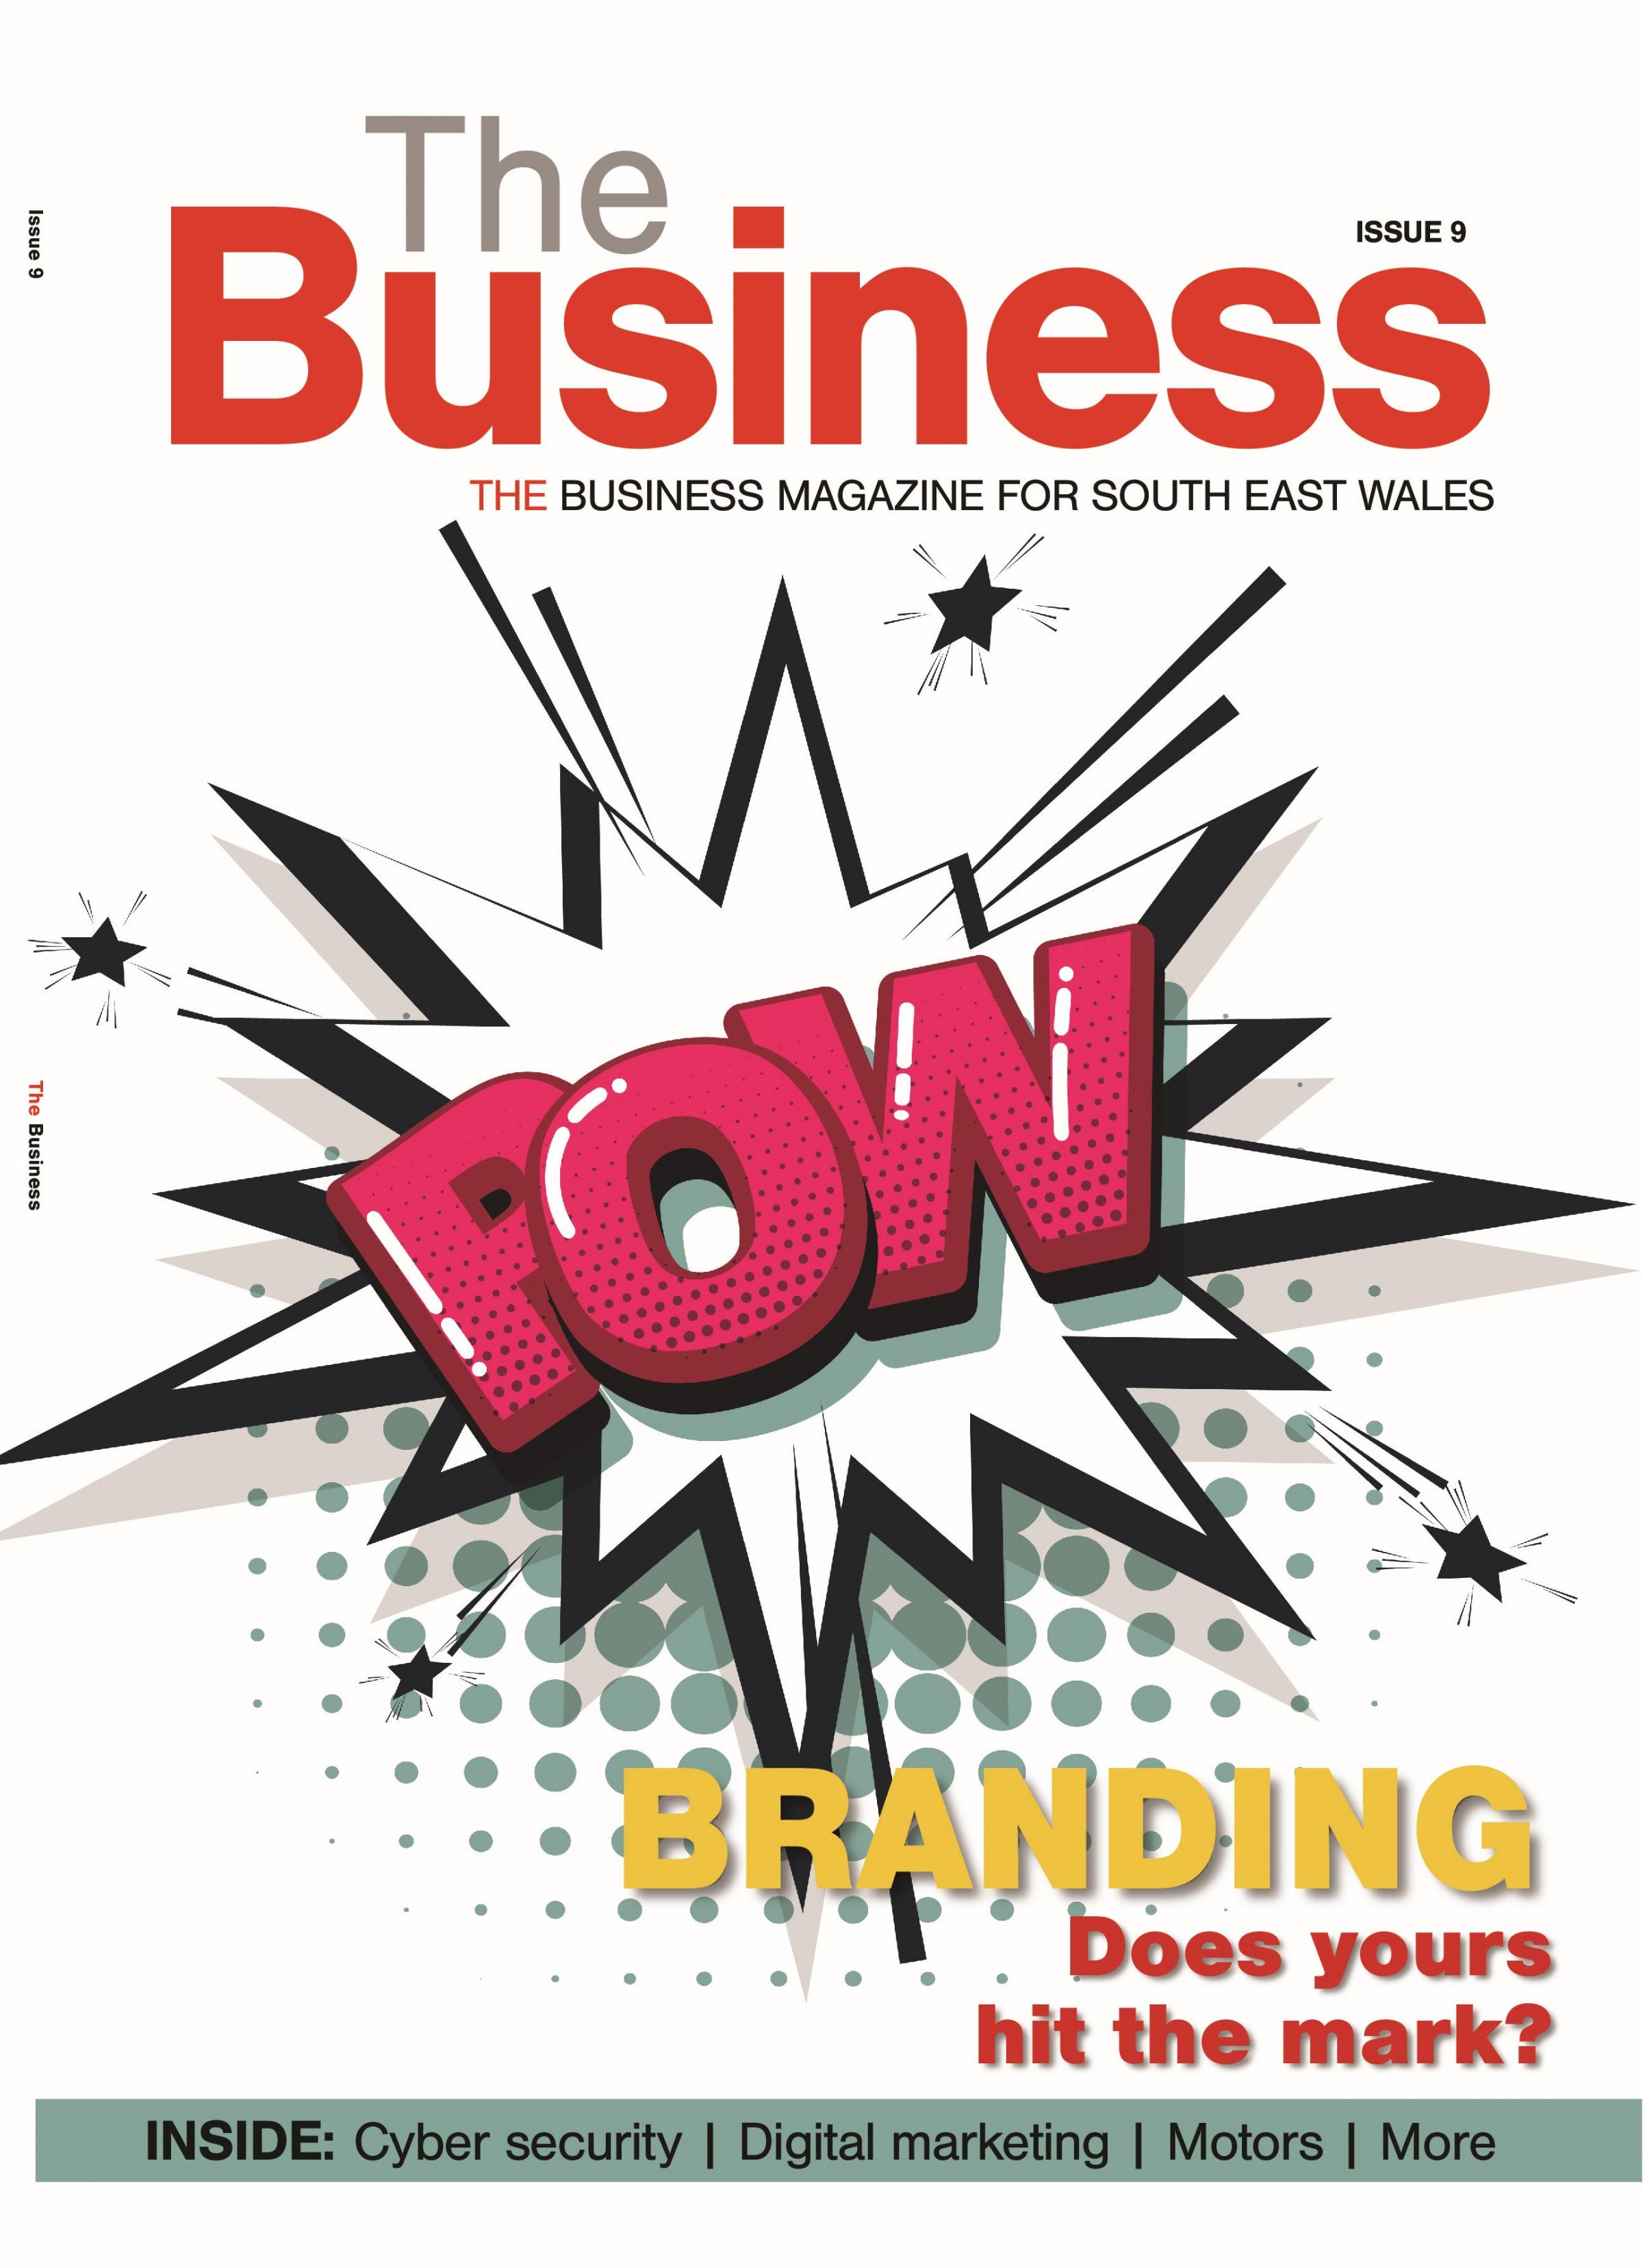 THE BUSINESS: Issue 9 and it's all about branding